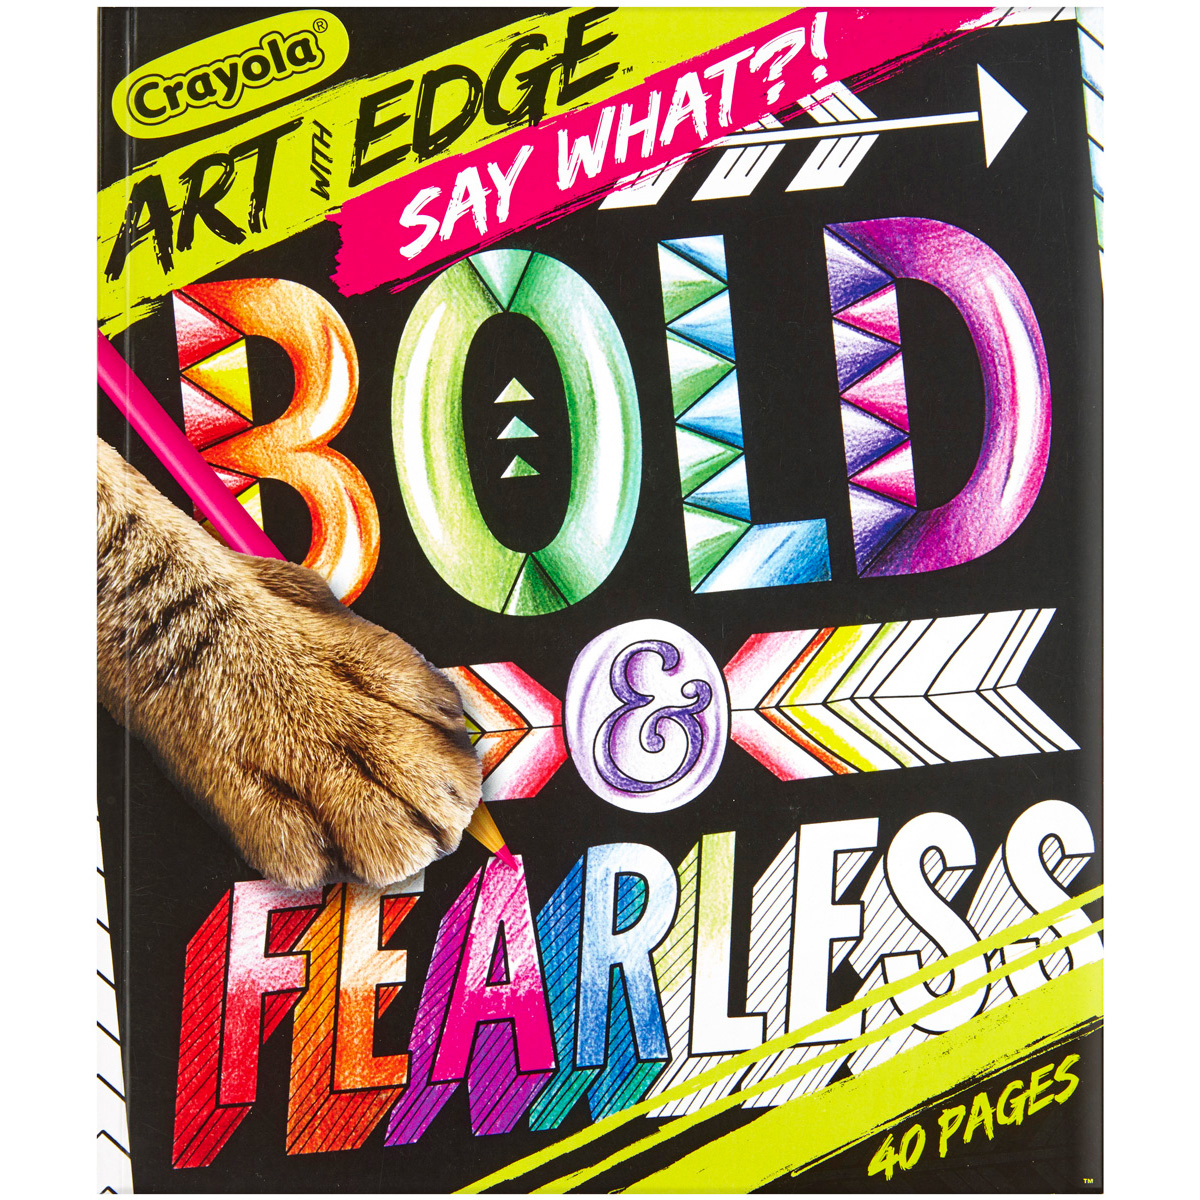 Crayola Art With Edge, Bold & Fearless,40 Premium Coloring Books by Generic